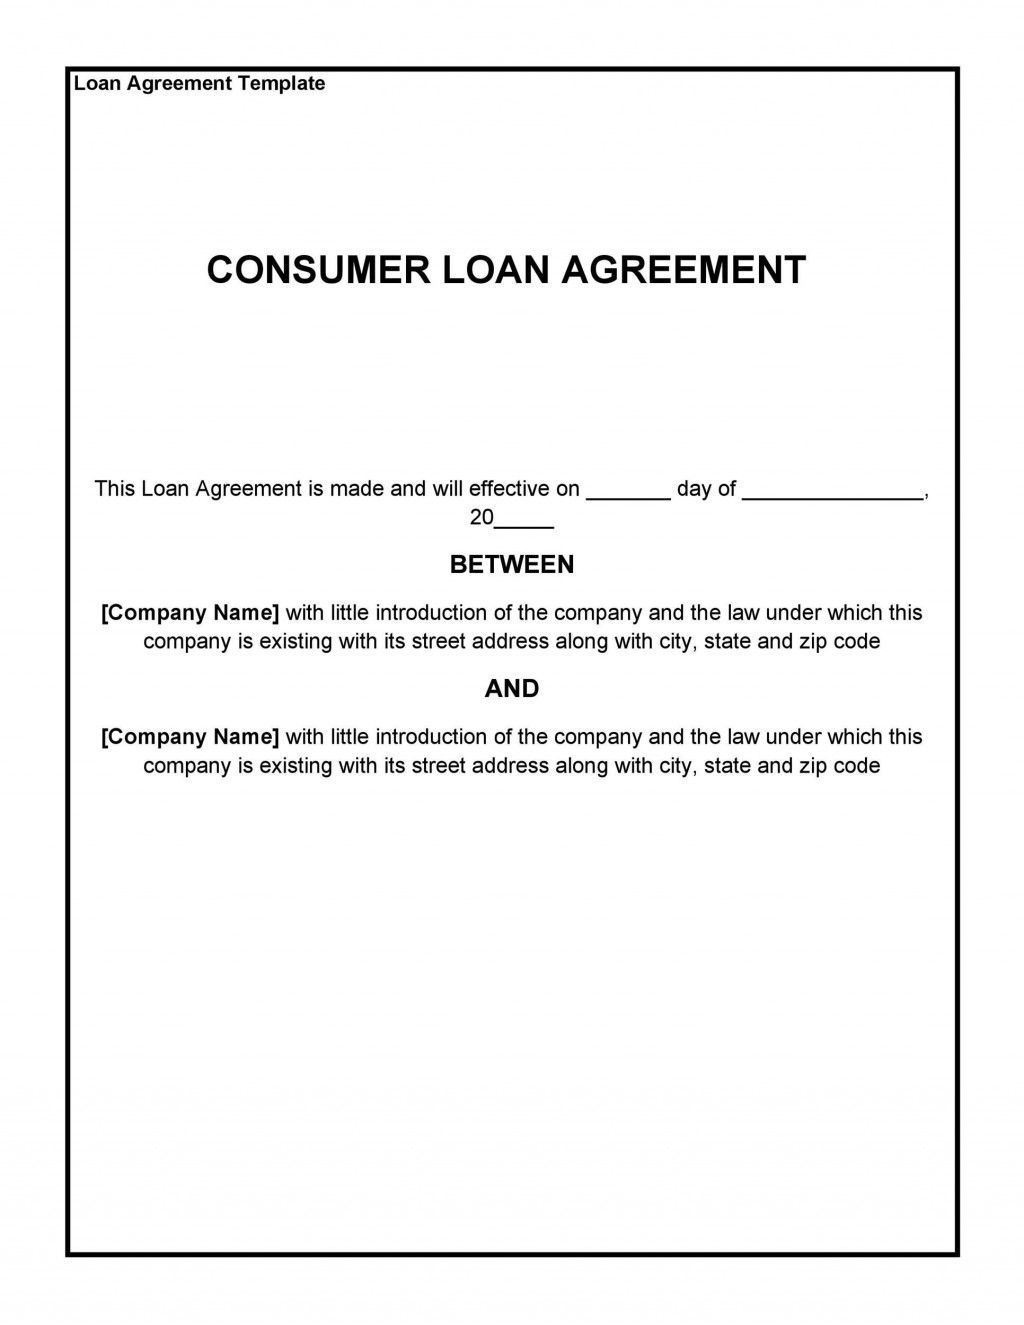 008 Fearsome Simple Family Loan Agreement Template Australia Design Large